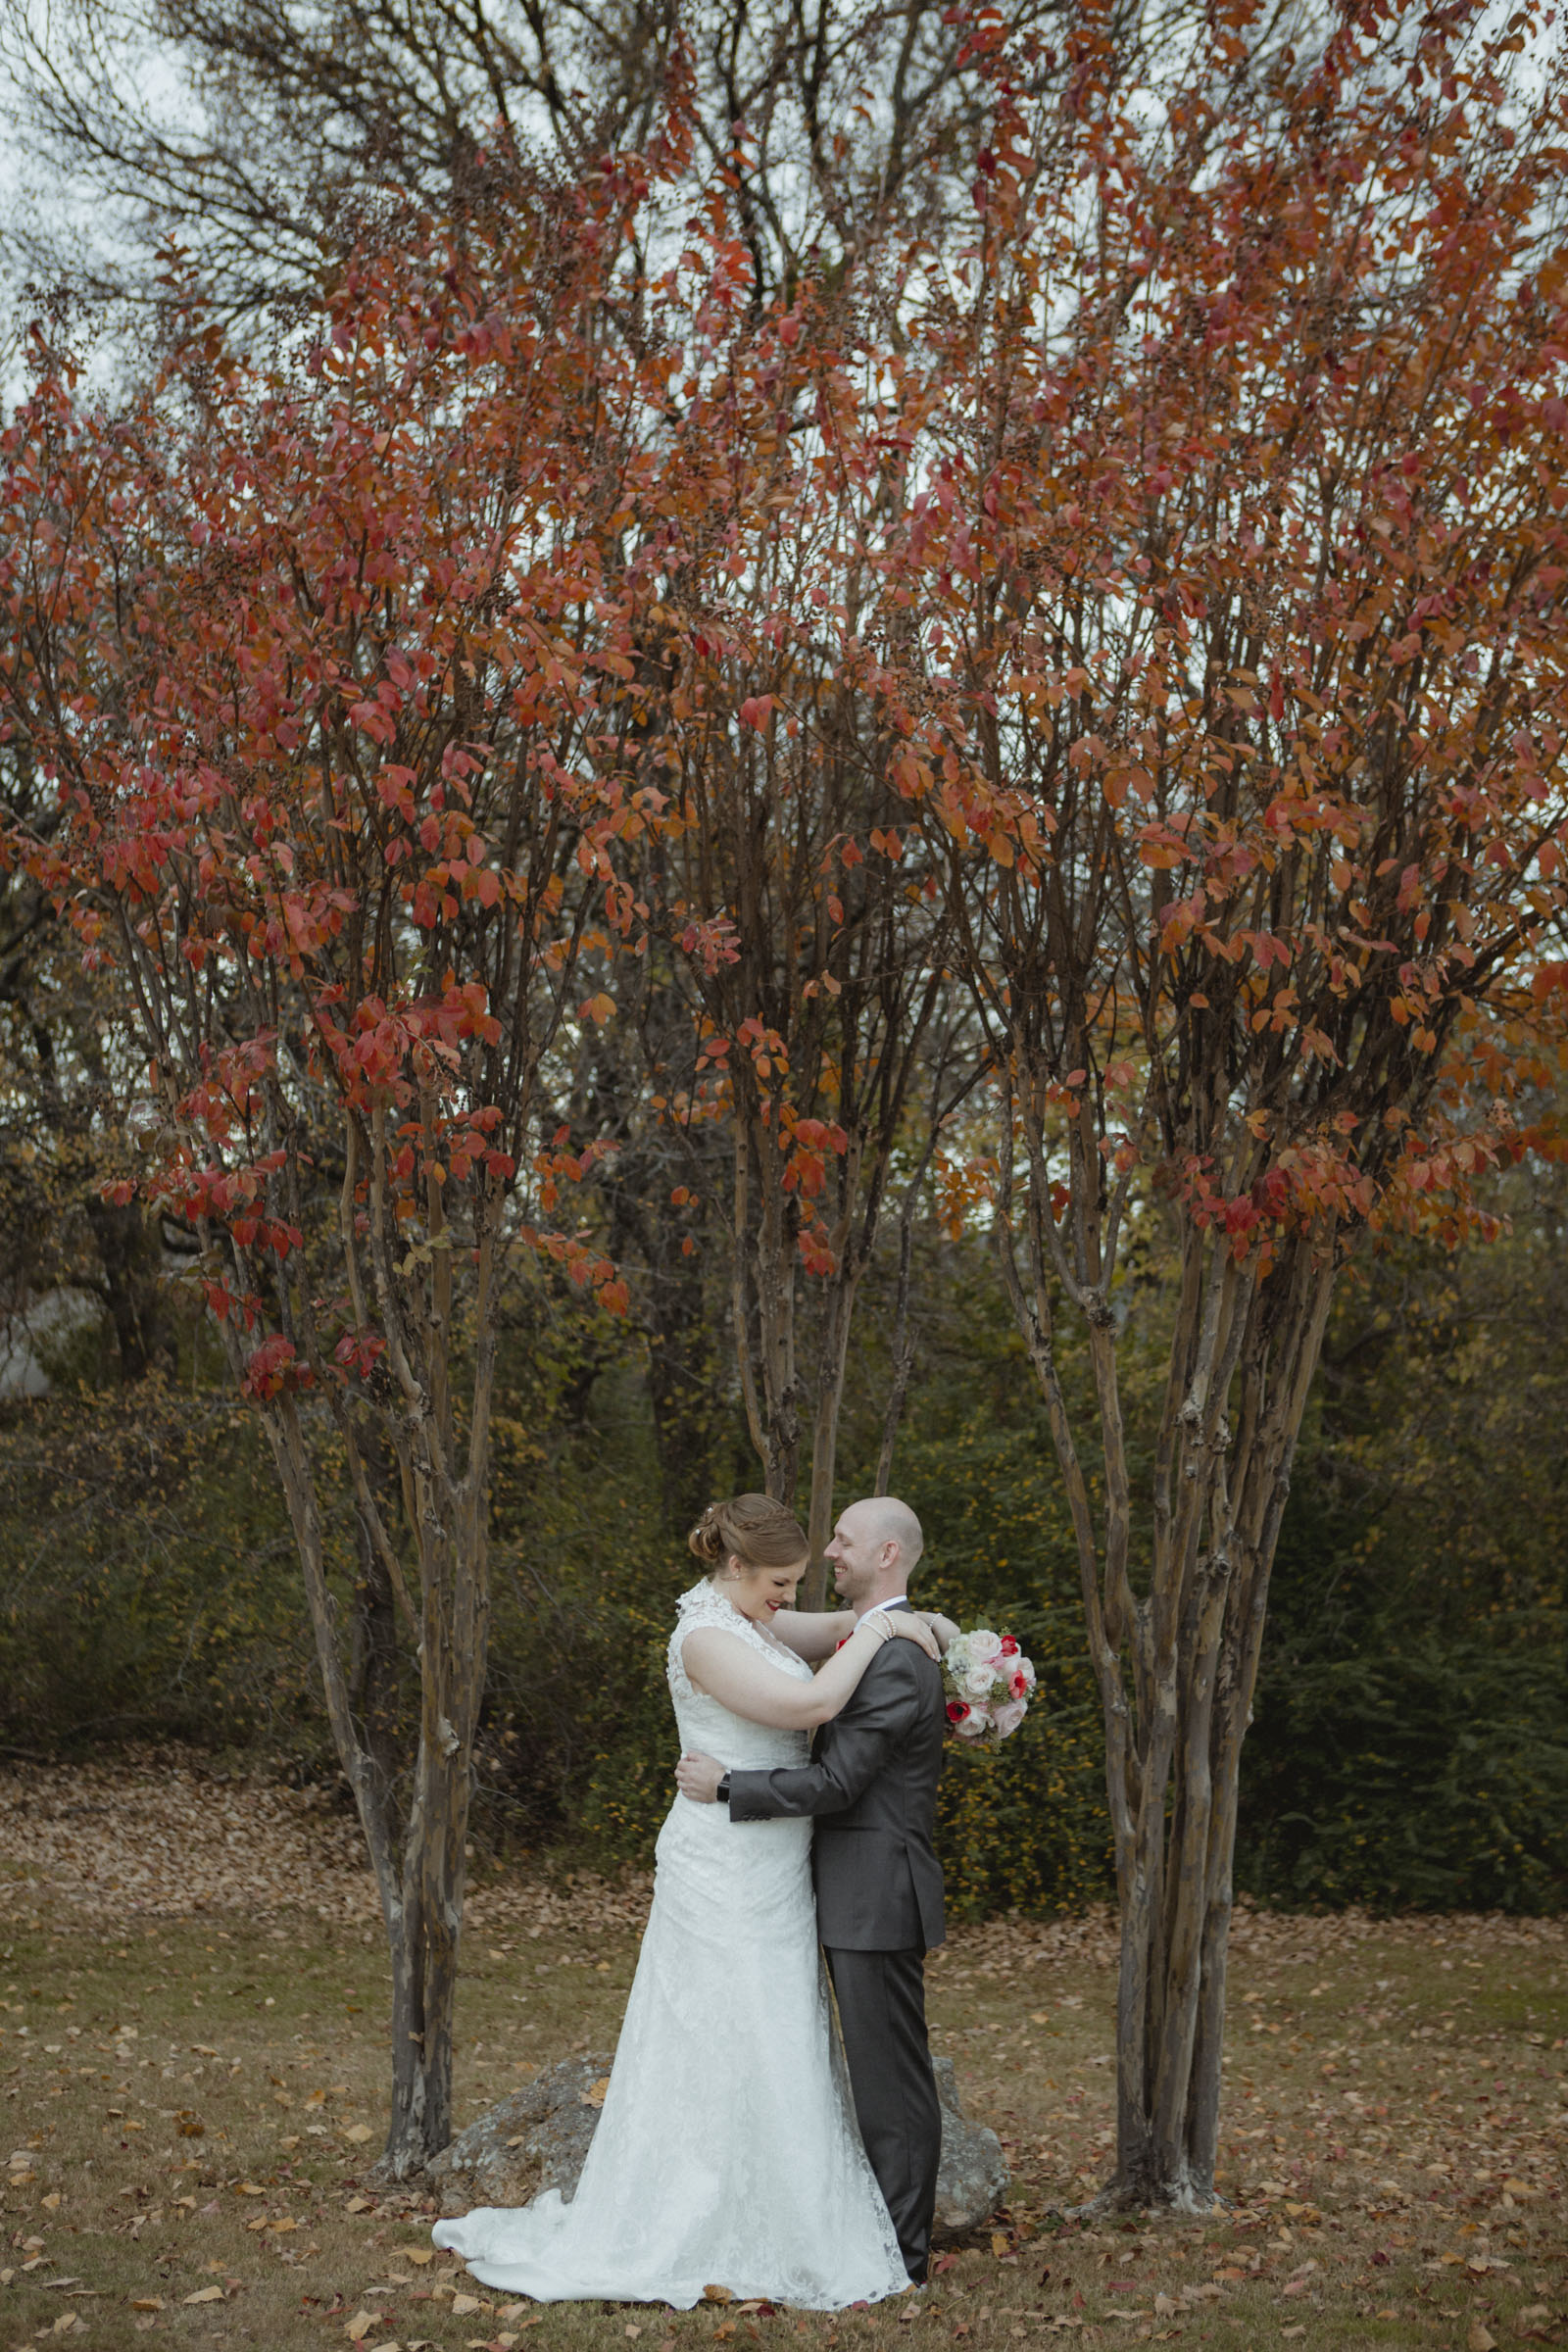 Outdoor Fall Wedding | Shelley & Eric | Amy Sims Photography